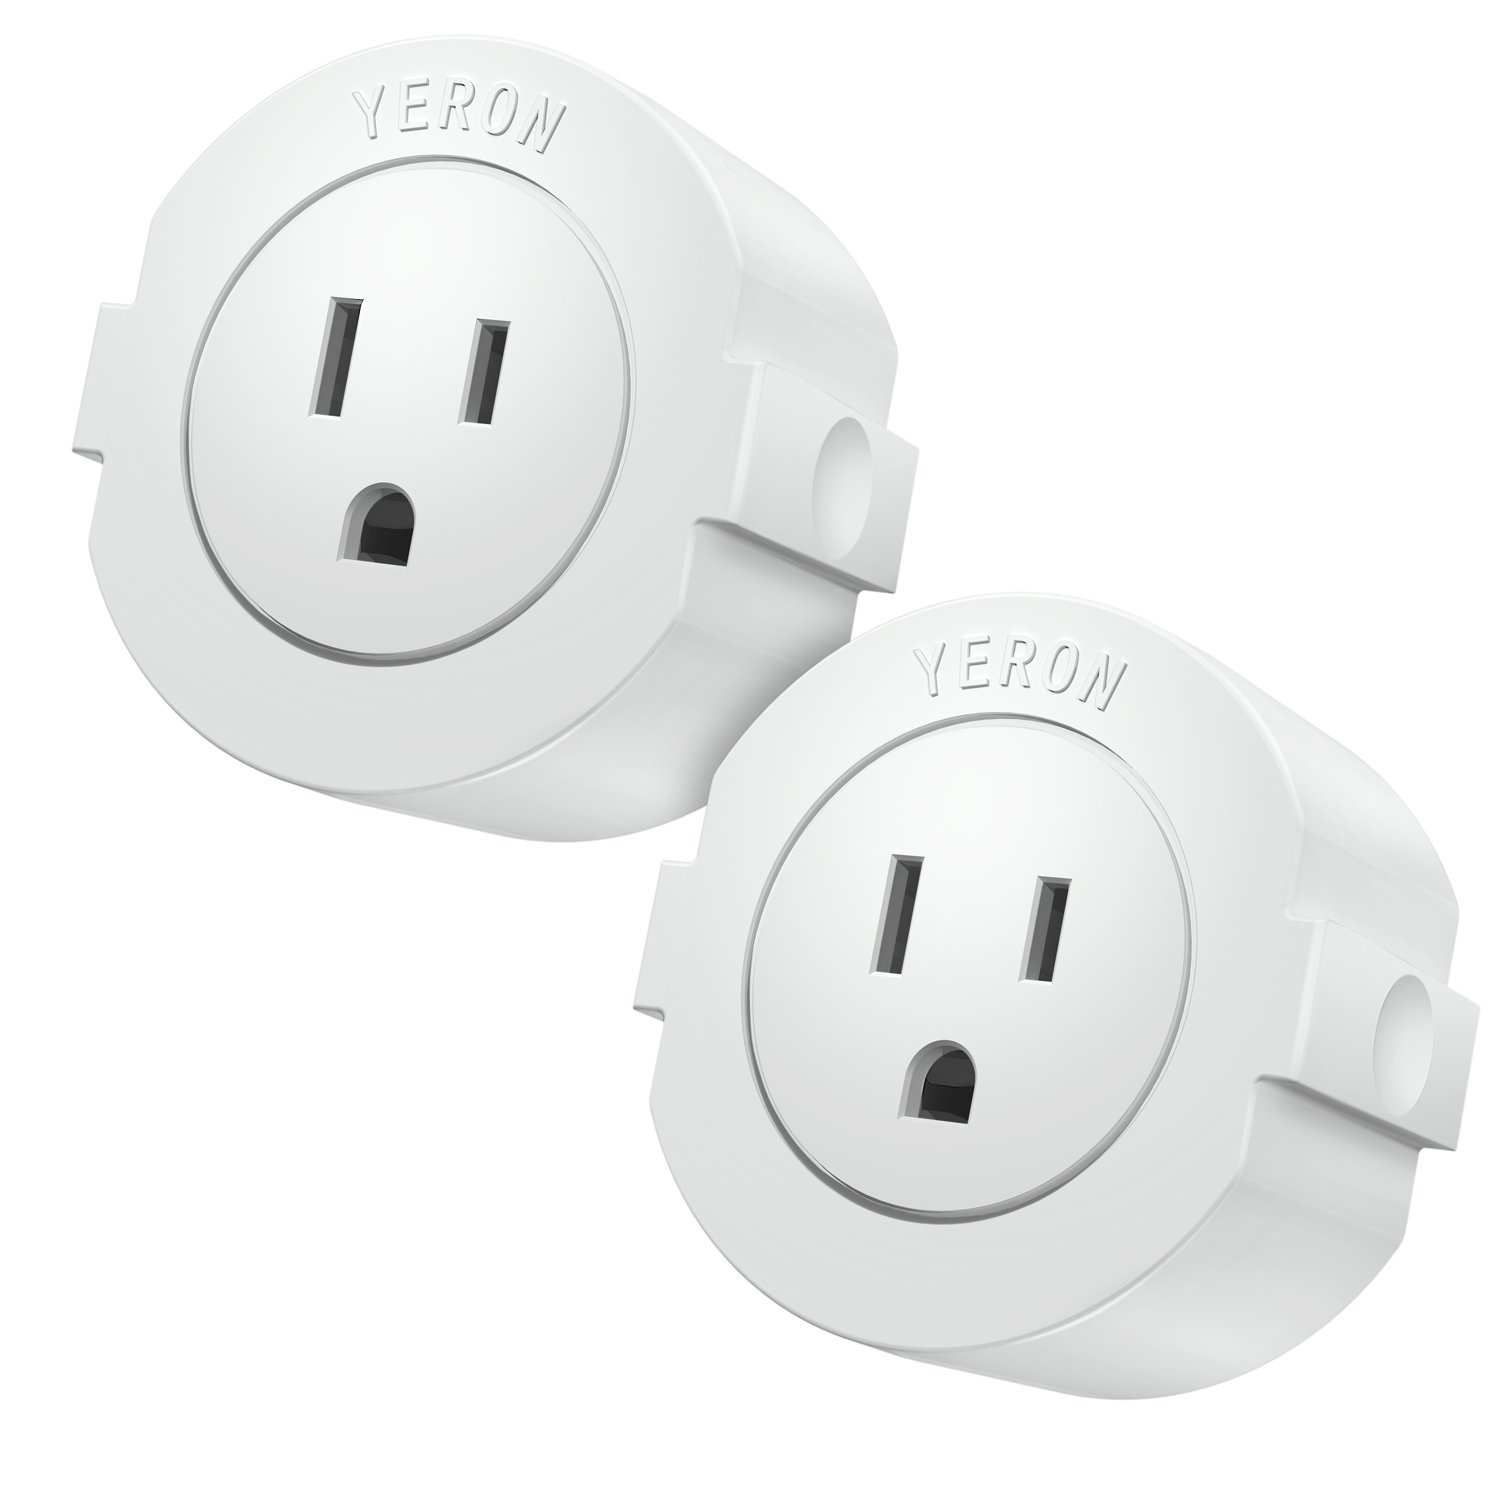 Wi-Fi Smart Plug Mini Outlet with Energy Monitoring and Timer function, Compatible with Alexa, Google Home and IFTTT, No Hub Required, ETL listed, White,2-Pack.